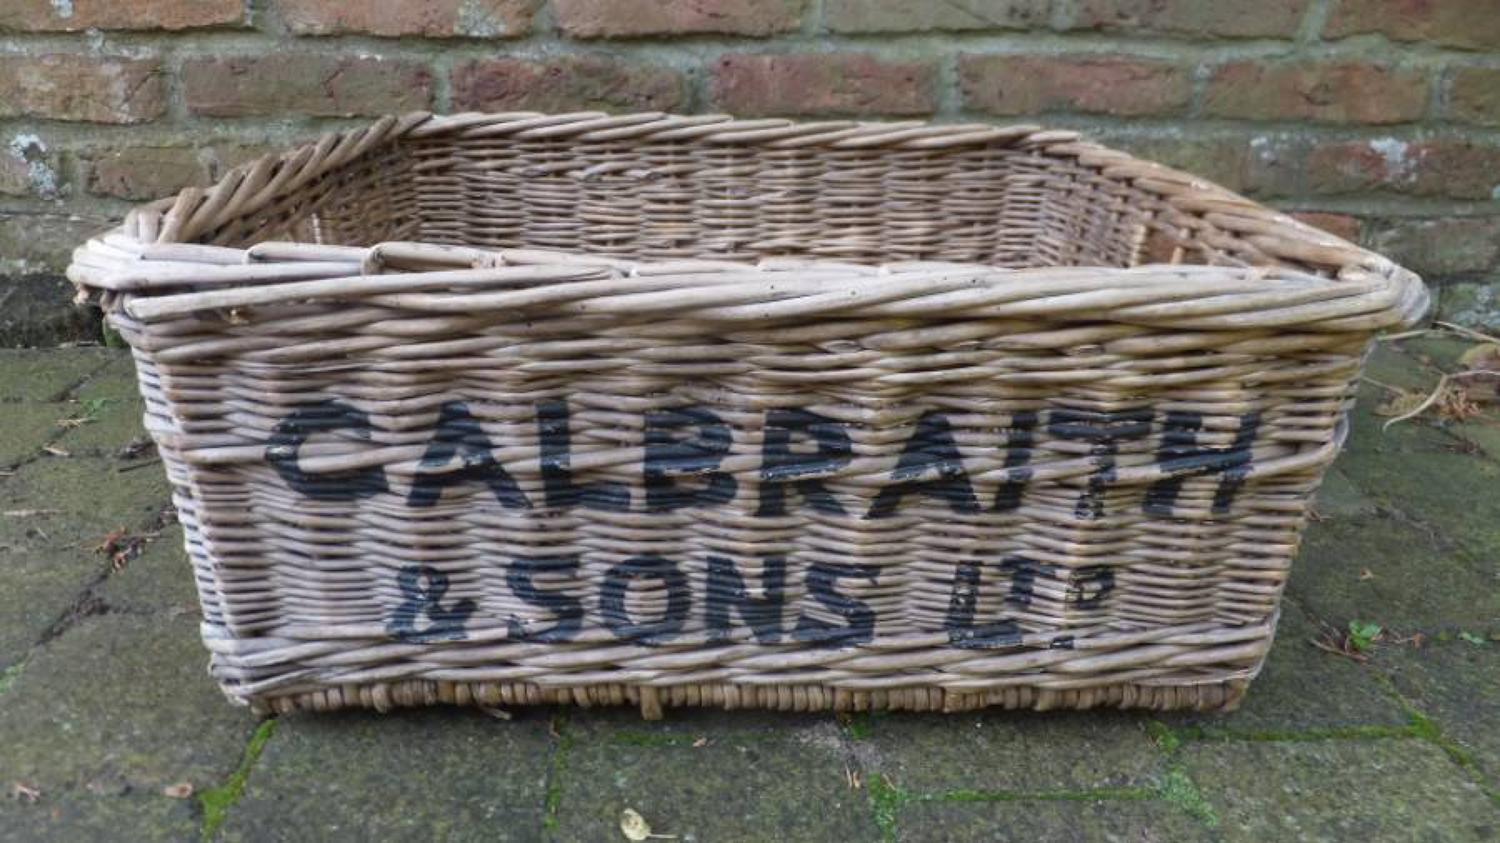 Bakers Basket - Calbraith & Sons Ltd - Hovis